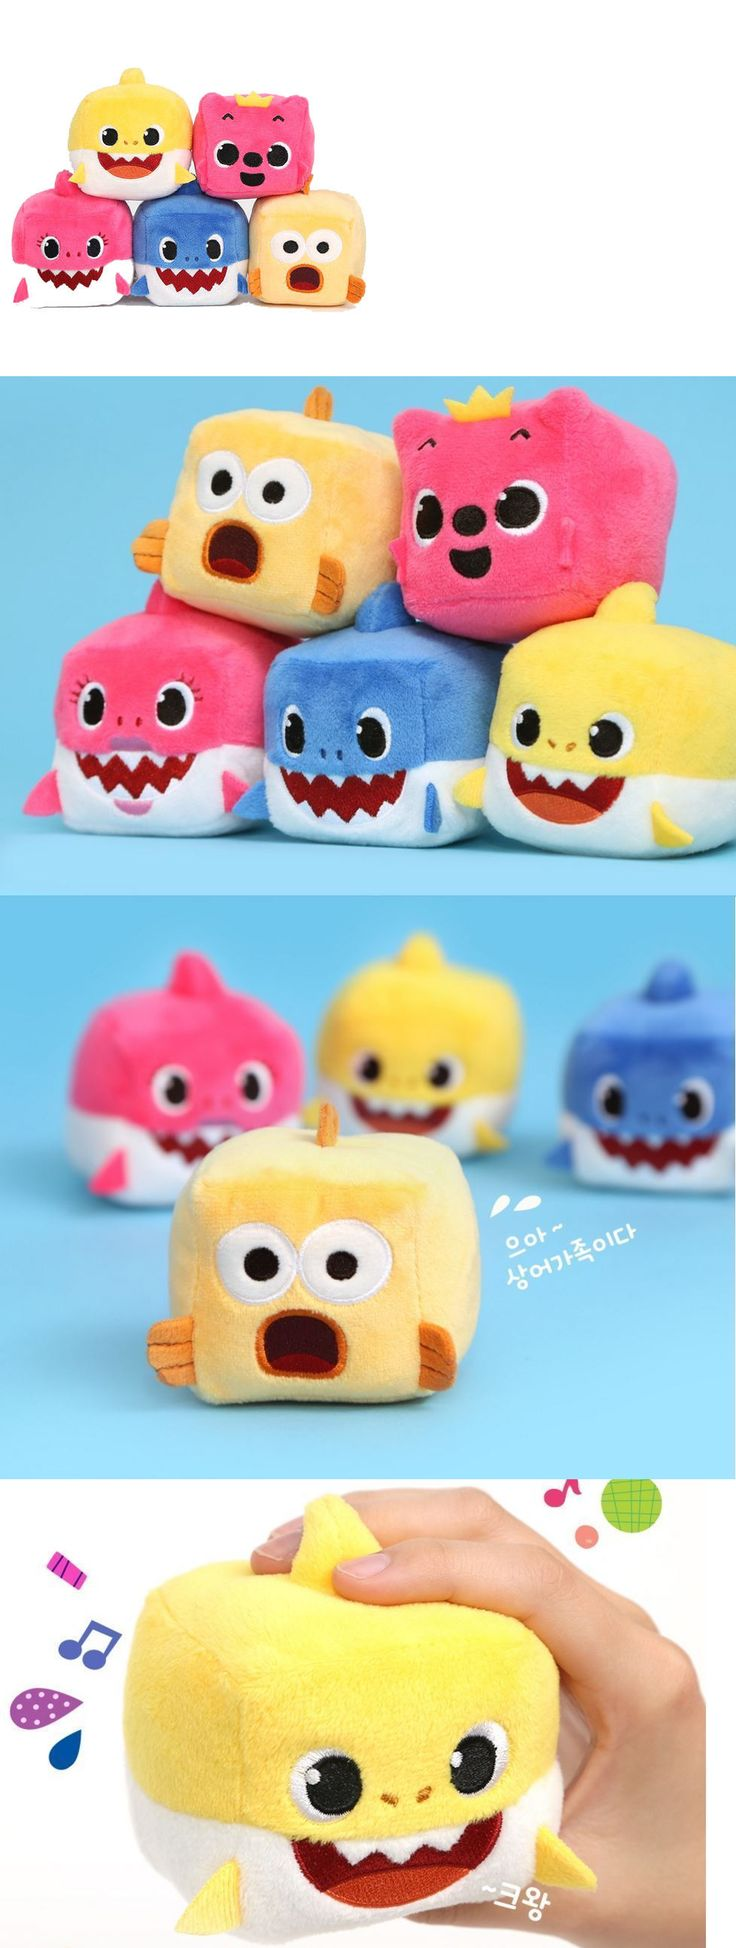 Plush Baby Toys 131084: Pinkfong Cubecube Sound Dolls Toys Shark Family 5 Songs Plush Dolls 6X6x6cm 3Y+ -> BUY IT NOW ONLY: $69.9 on eBay!